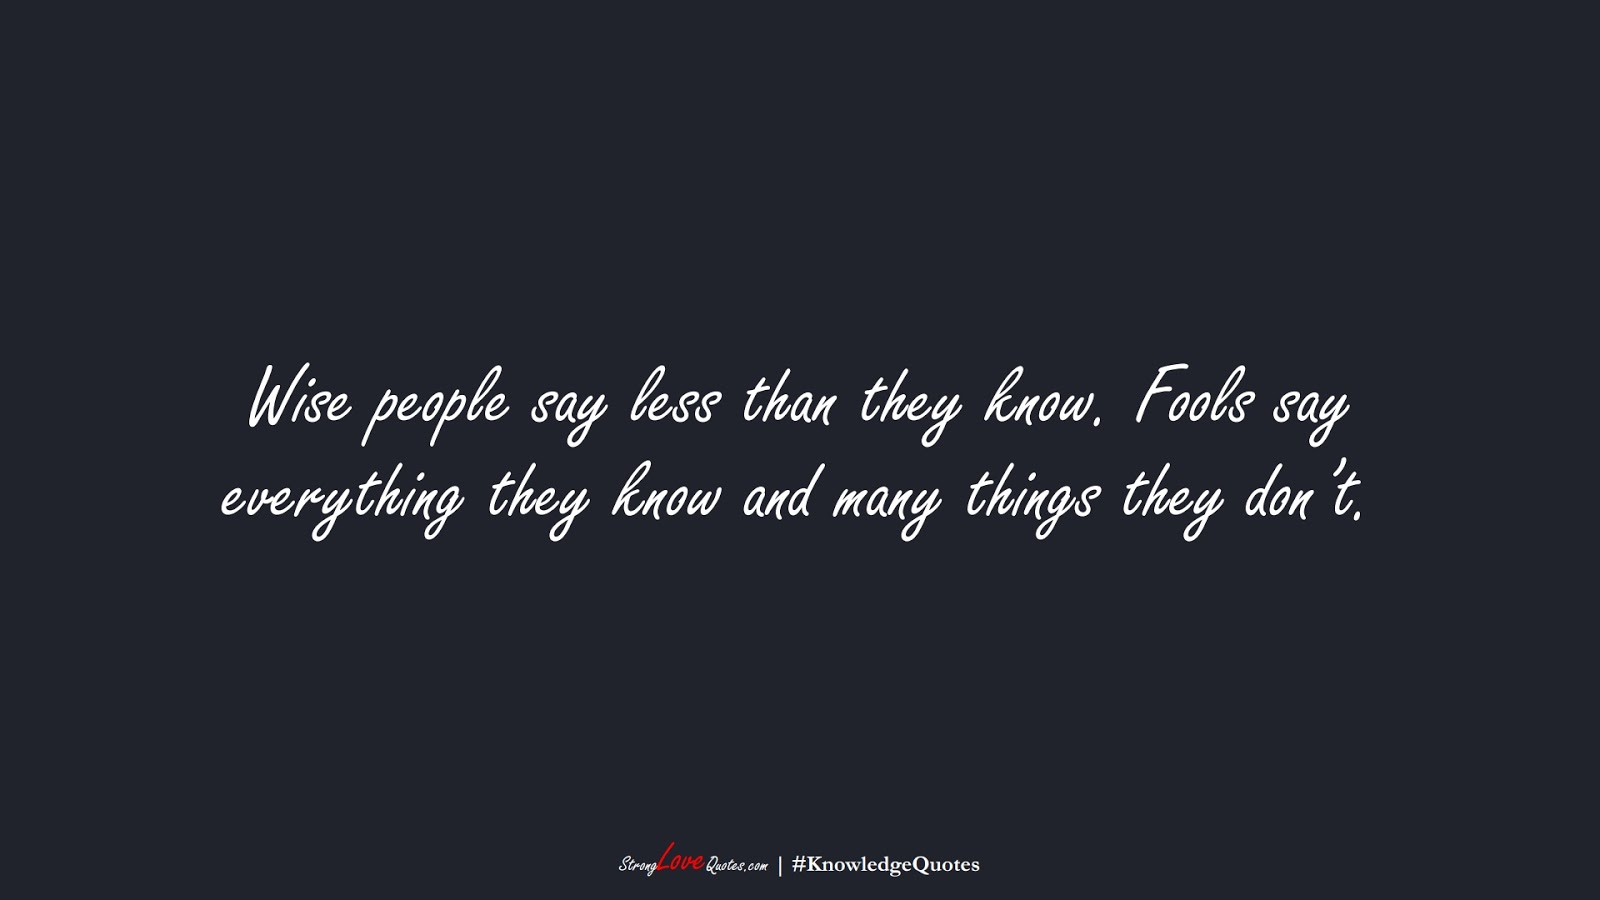 Wise people say less than they know. Fools say everything they know and many things they don't.FALSE